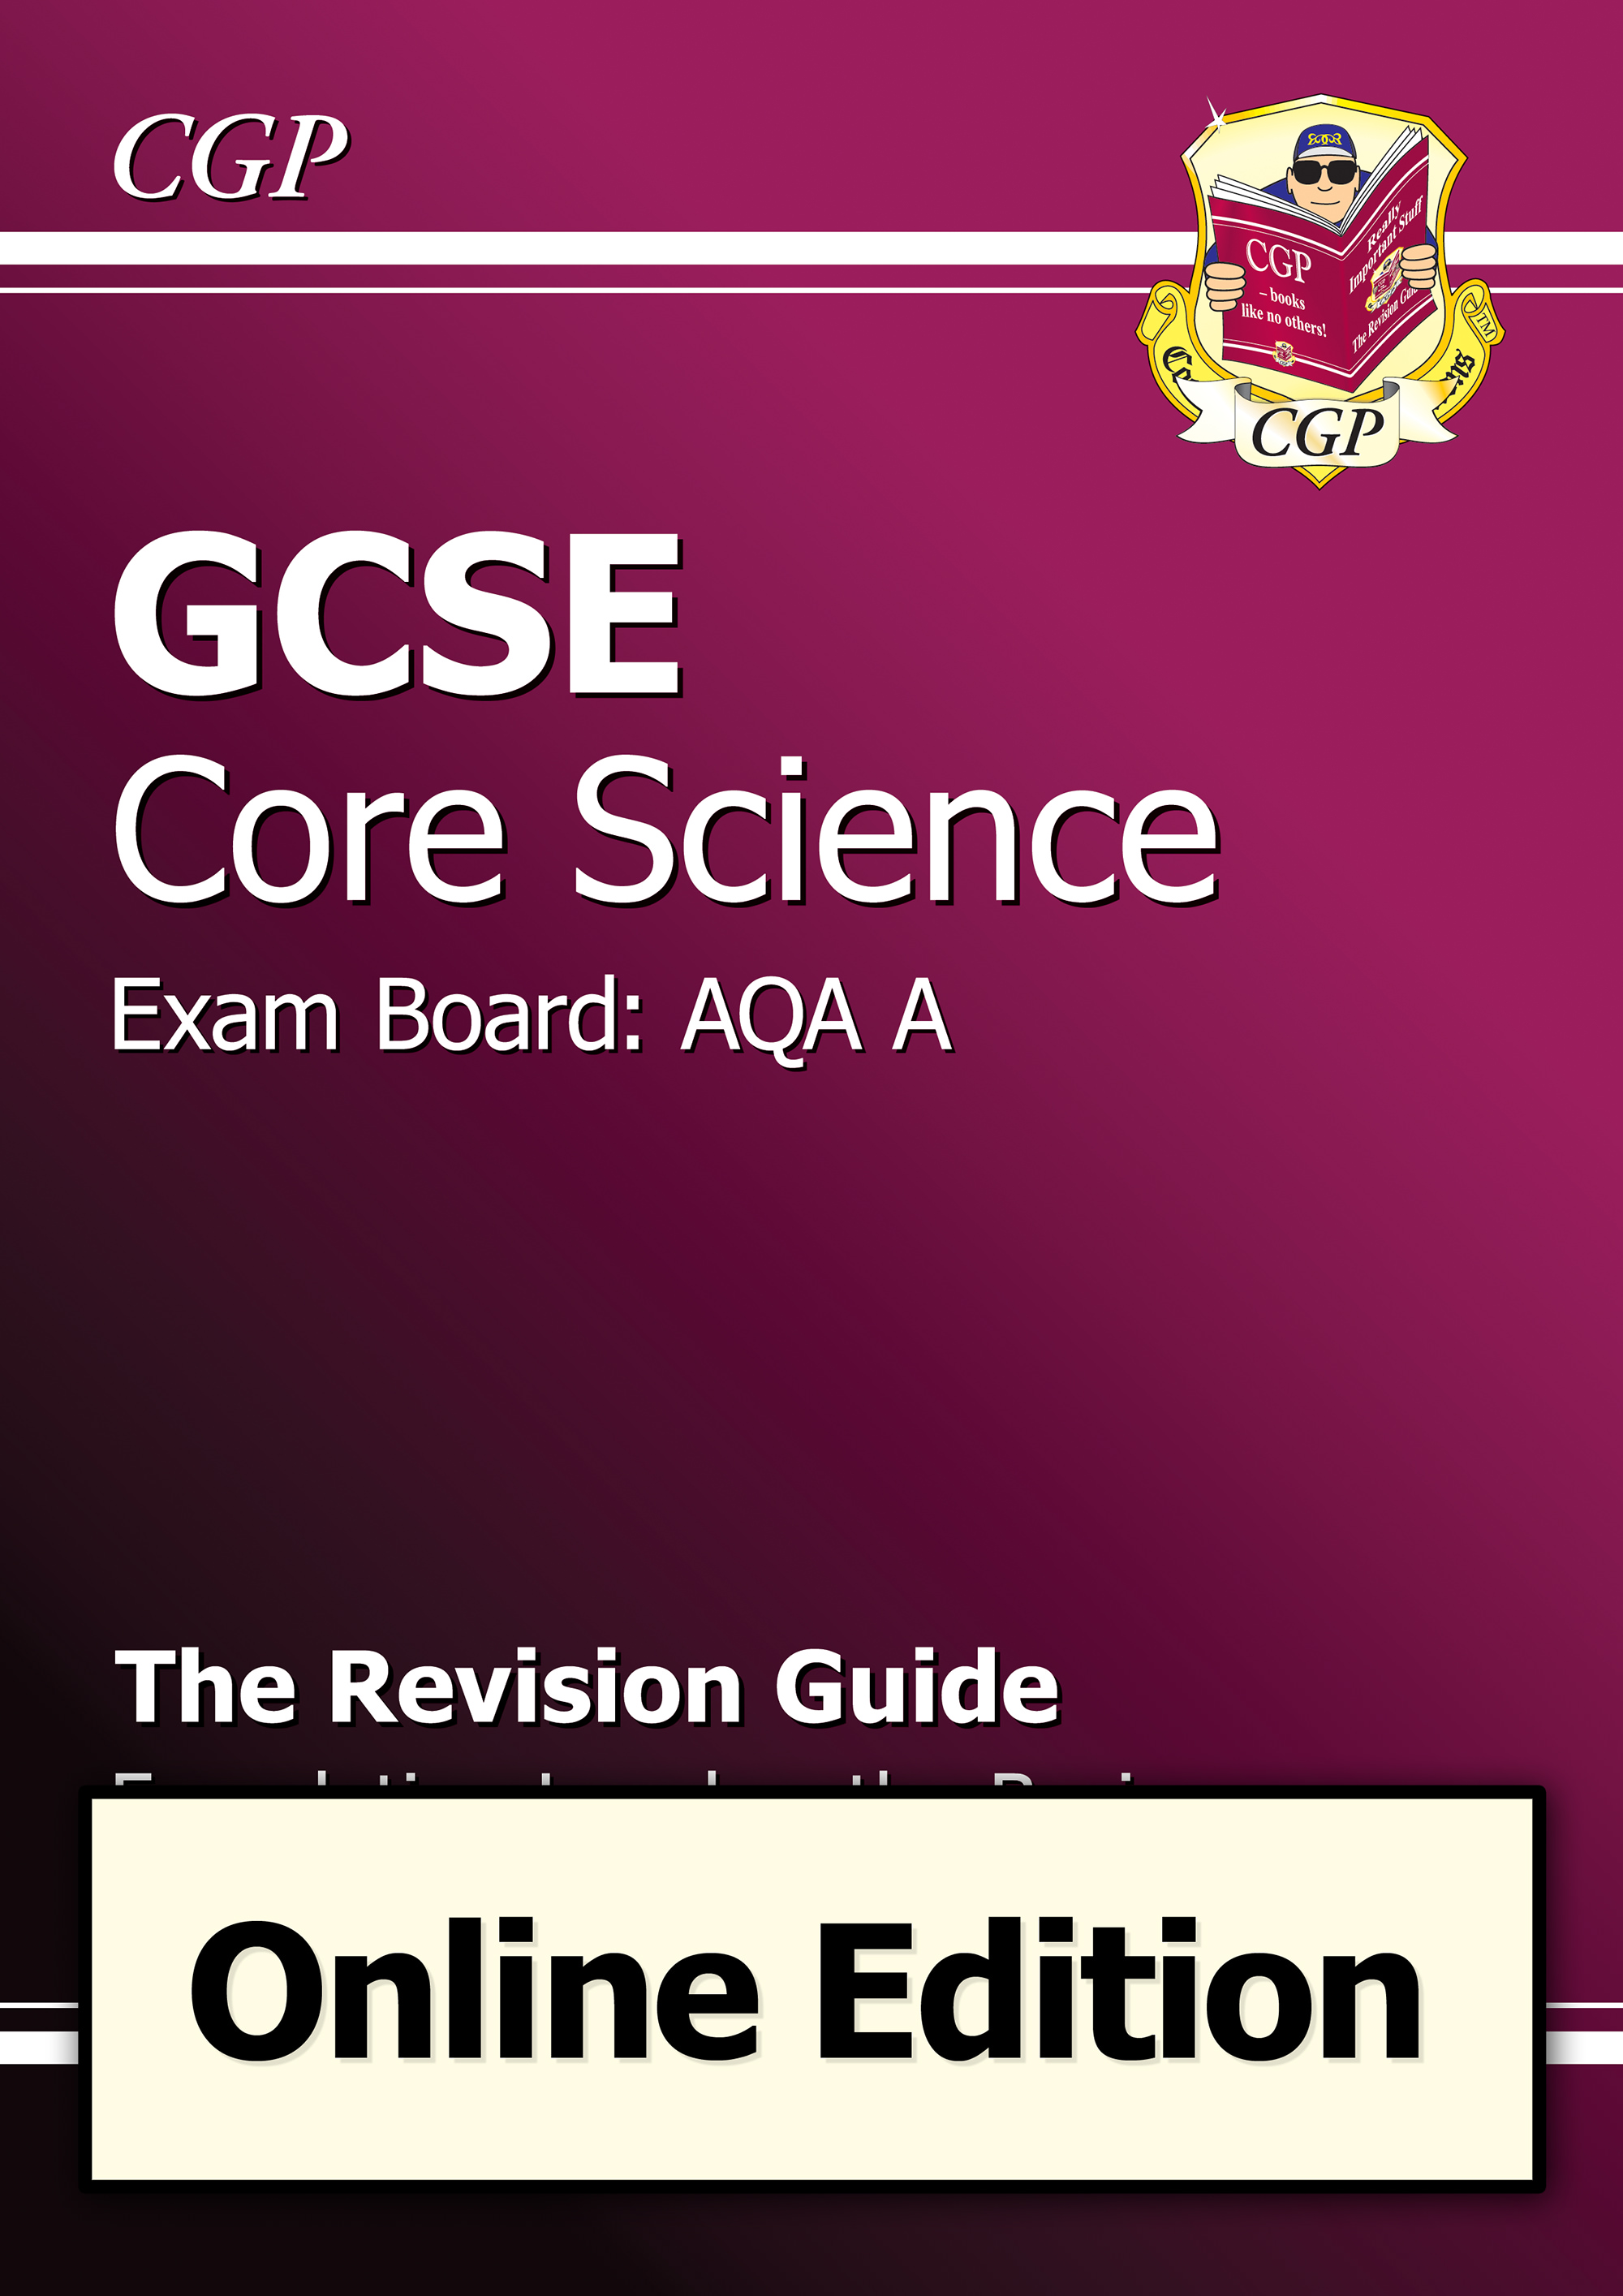 SABR41D - GCSE Core Science AQA A Revision Guide Foundation the Basics - Online Edition (A*-G course